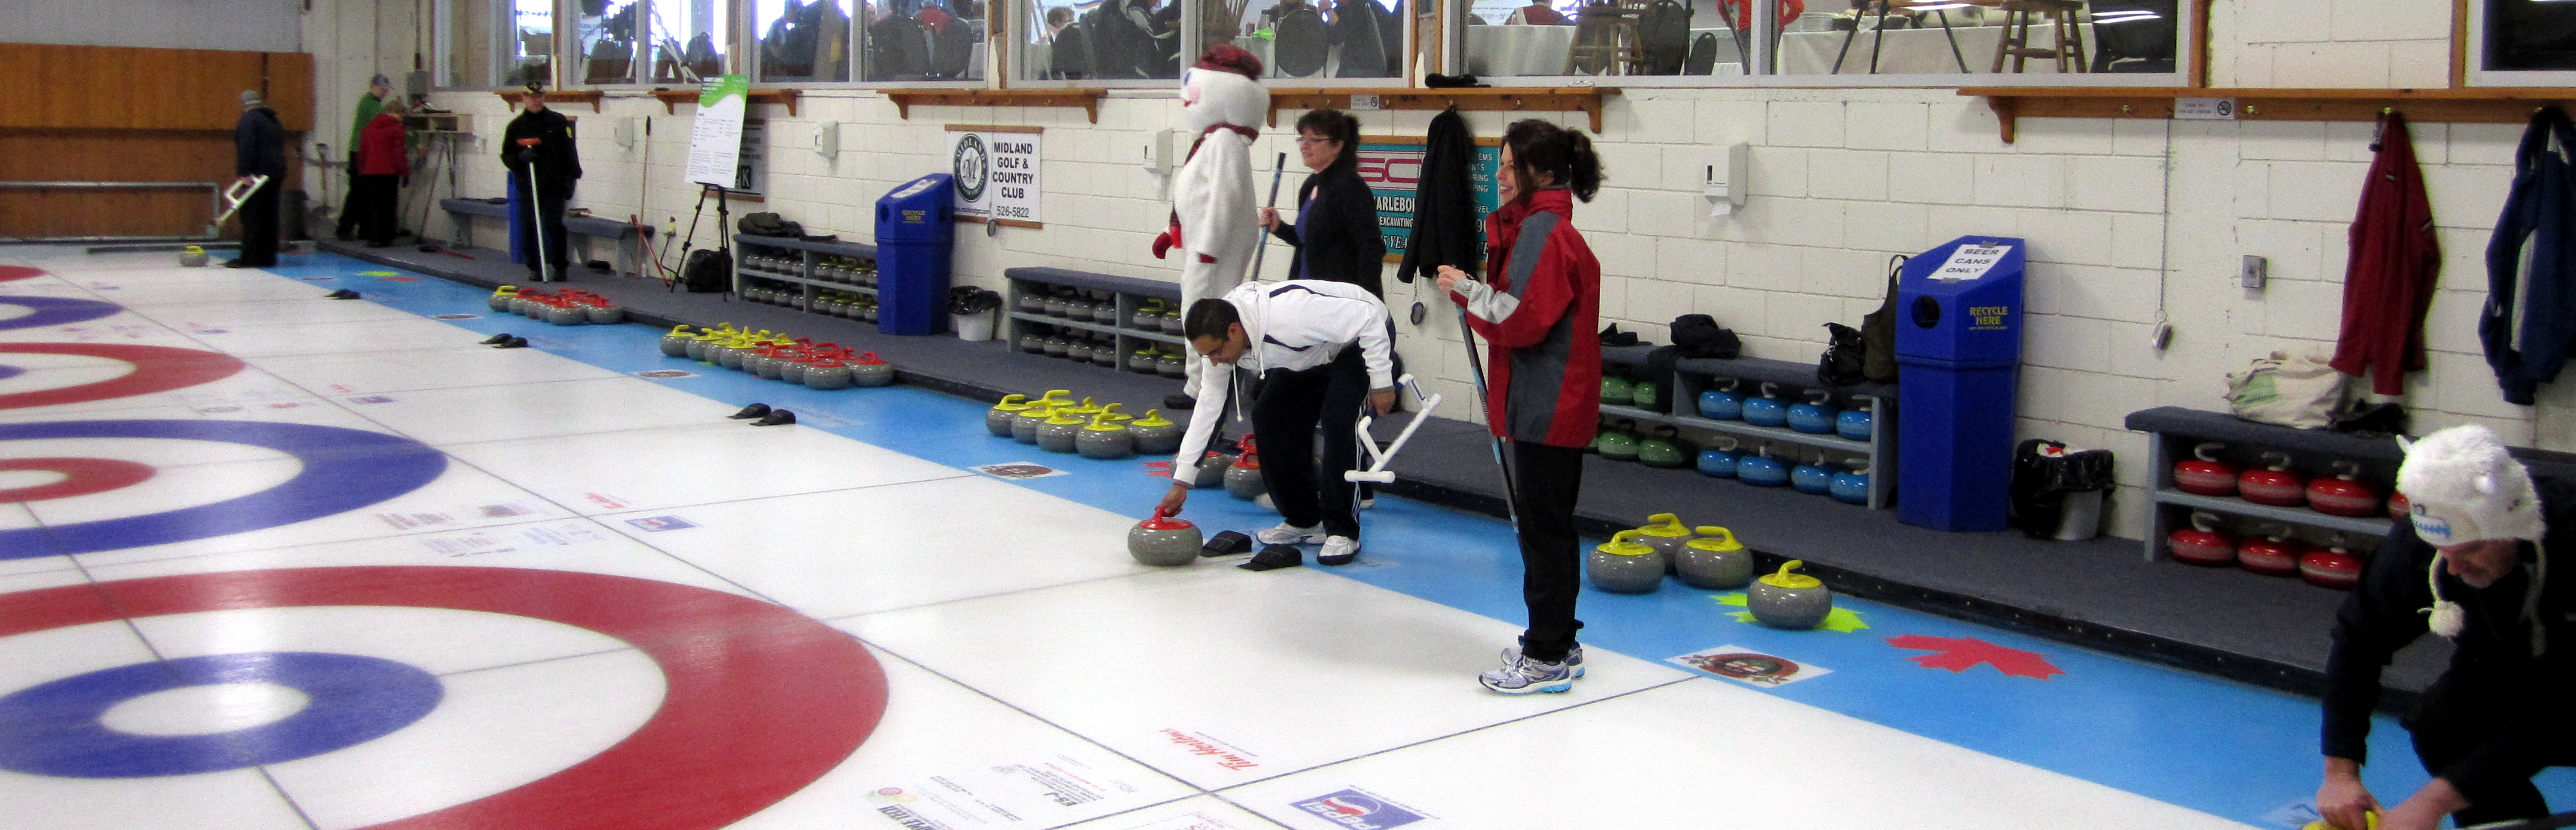 People Curling